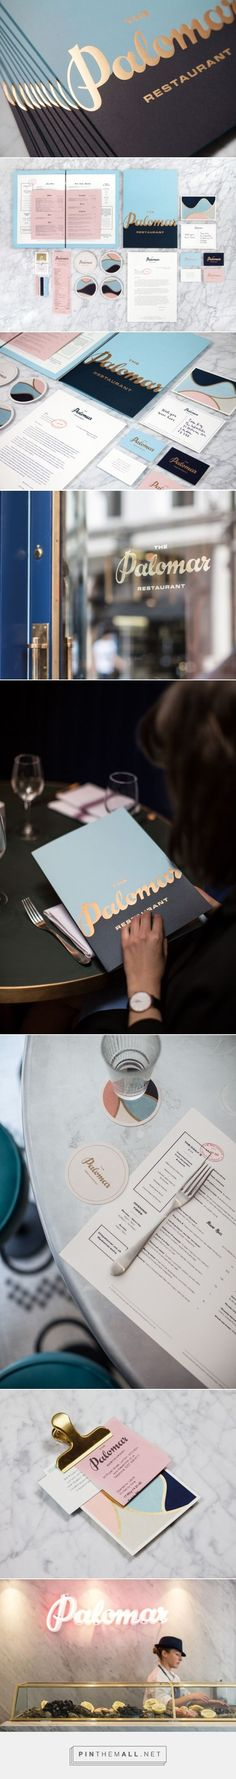 Art of the Menu: The Palomar... - a grouped images picture - Pin Them All